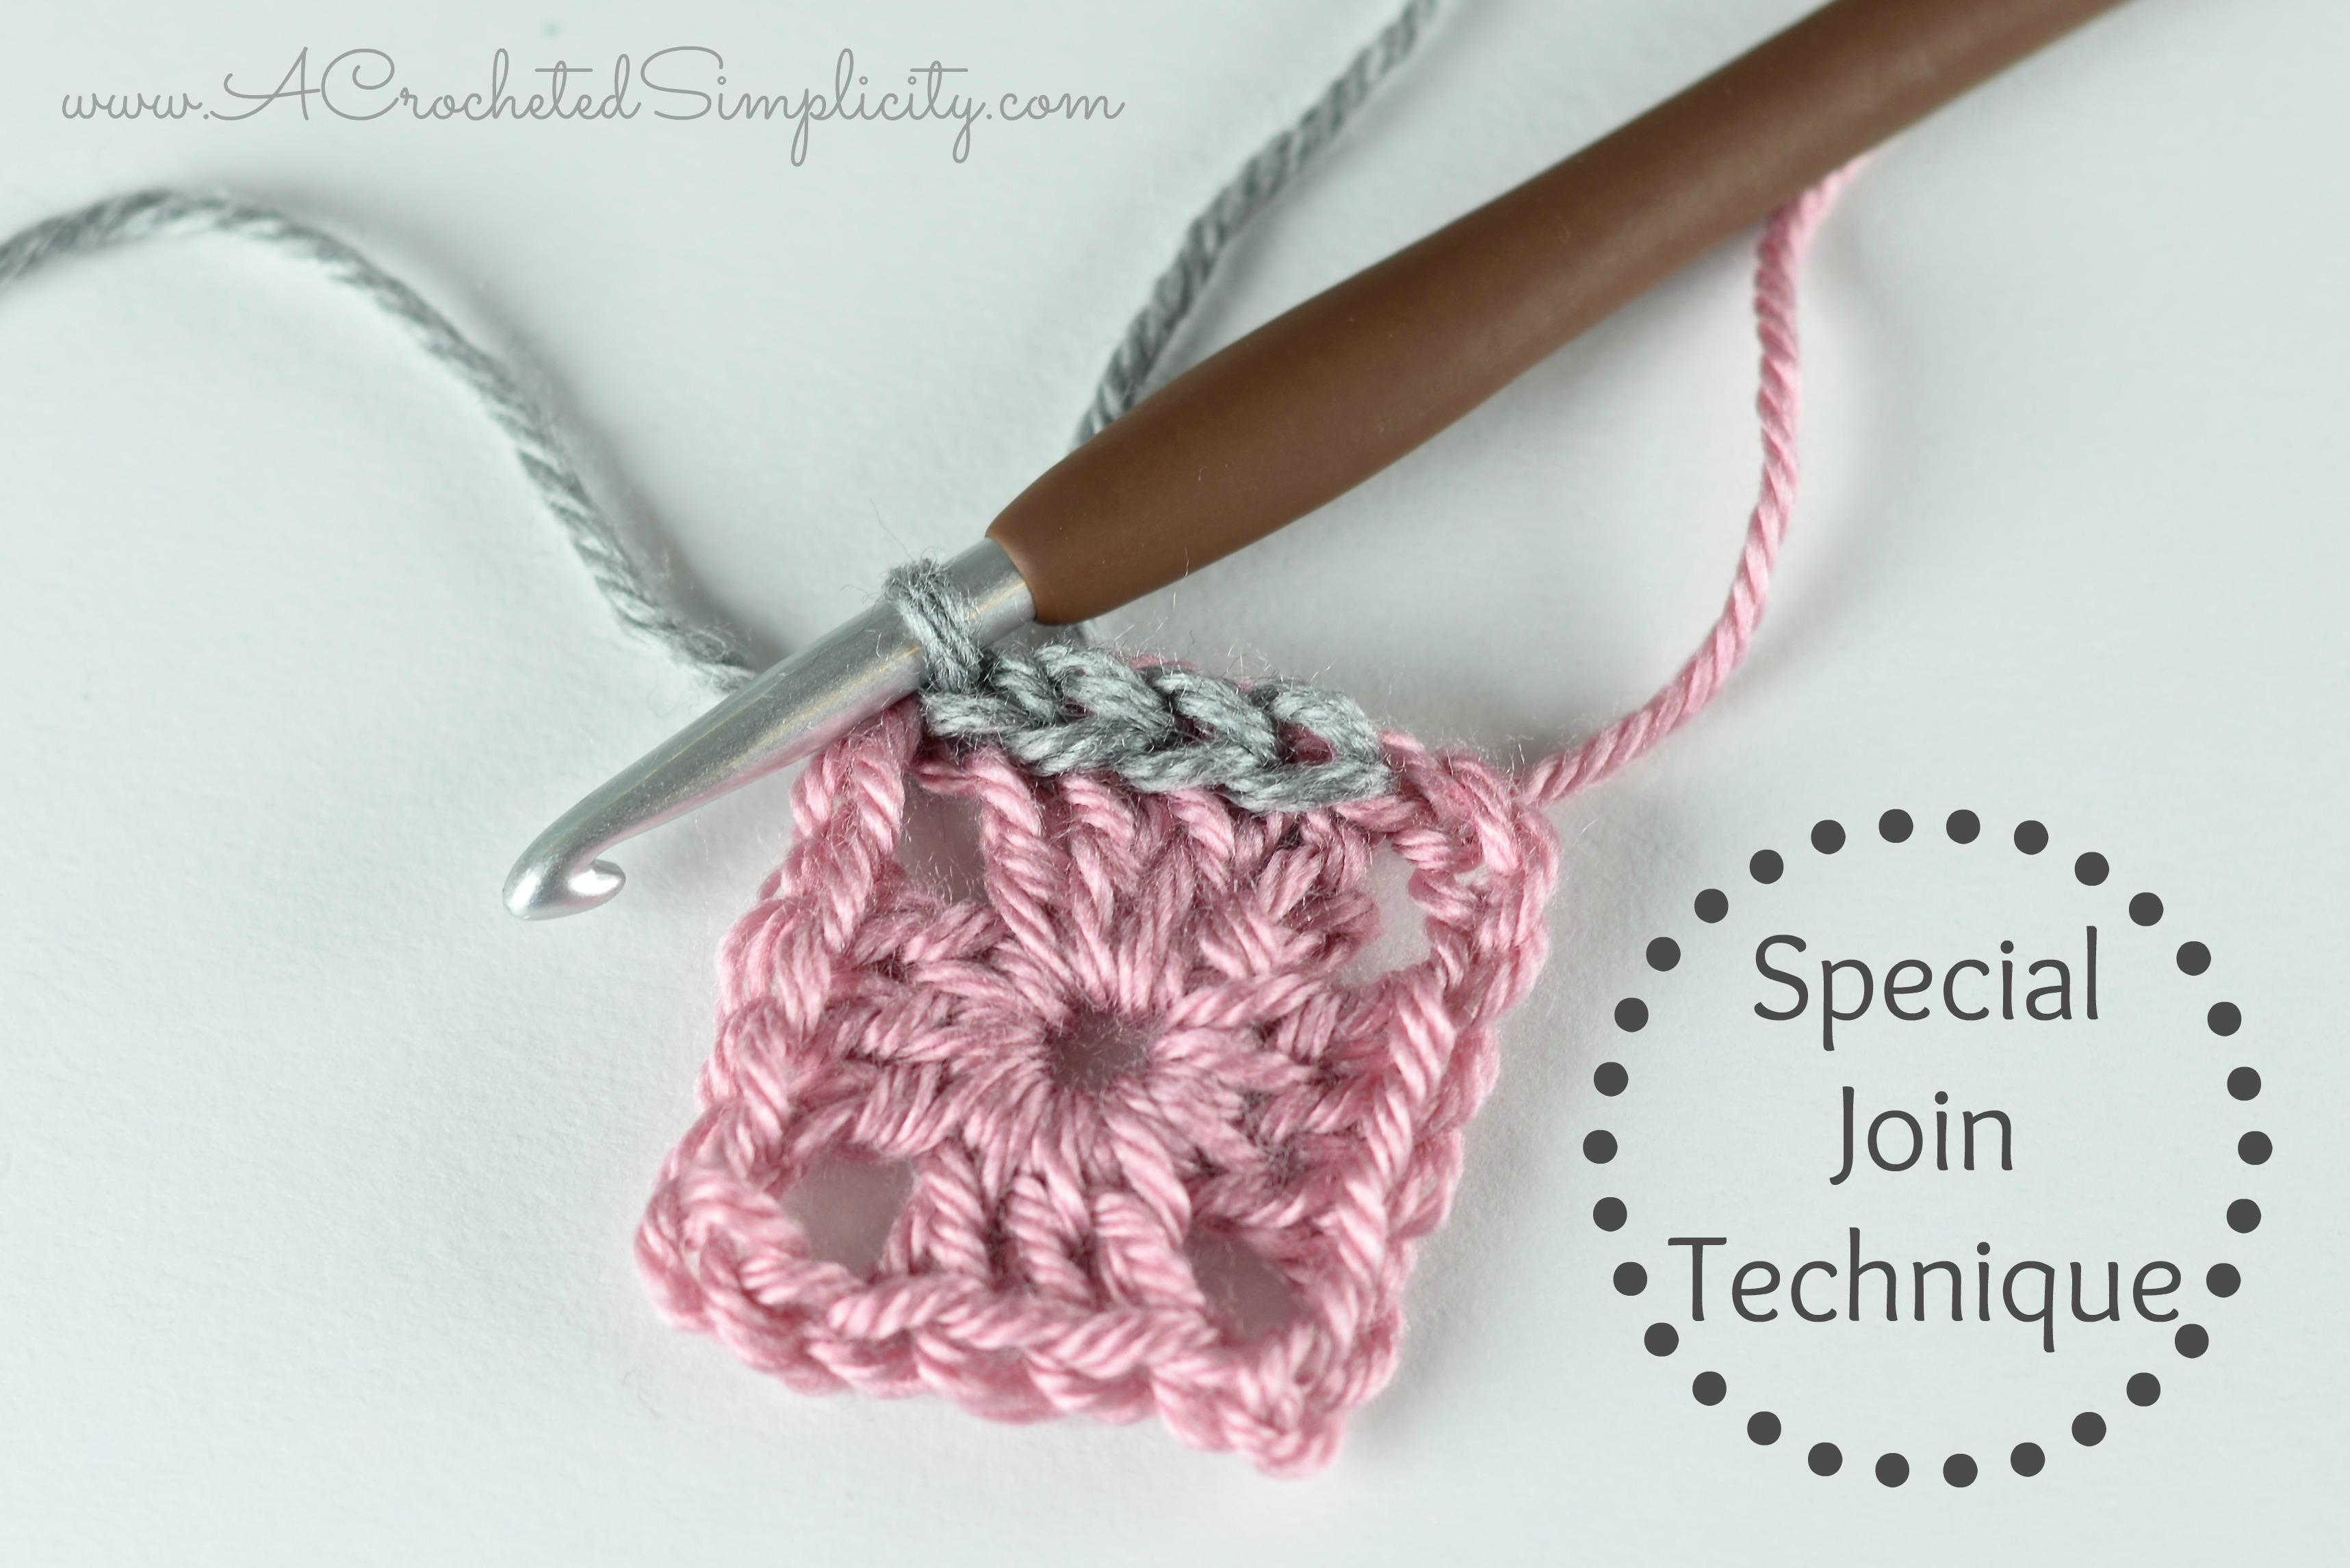 Crochet Tutorial - Special Join for Slip Stitch Rounds - A Crocheted ...